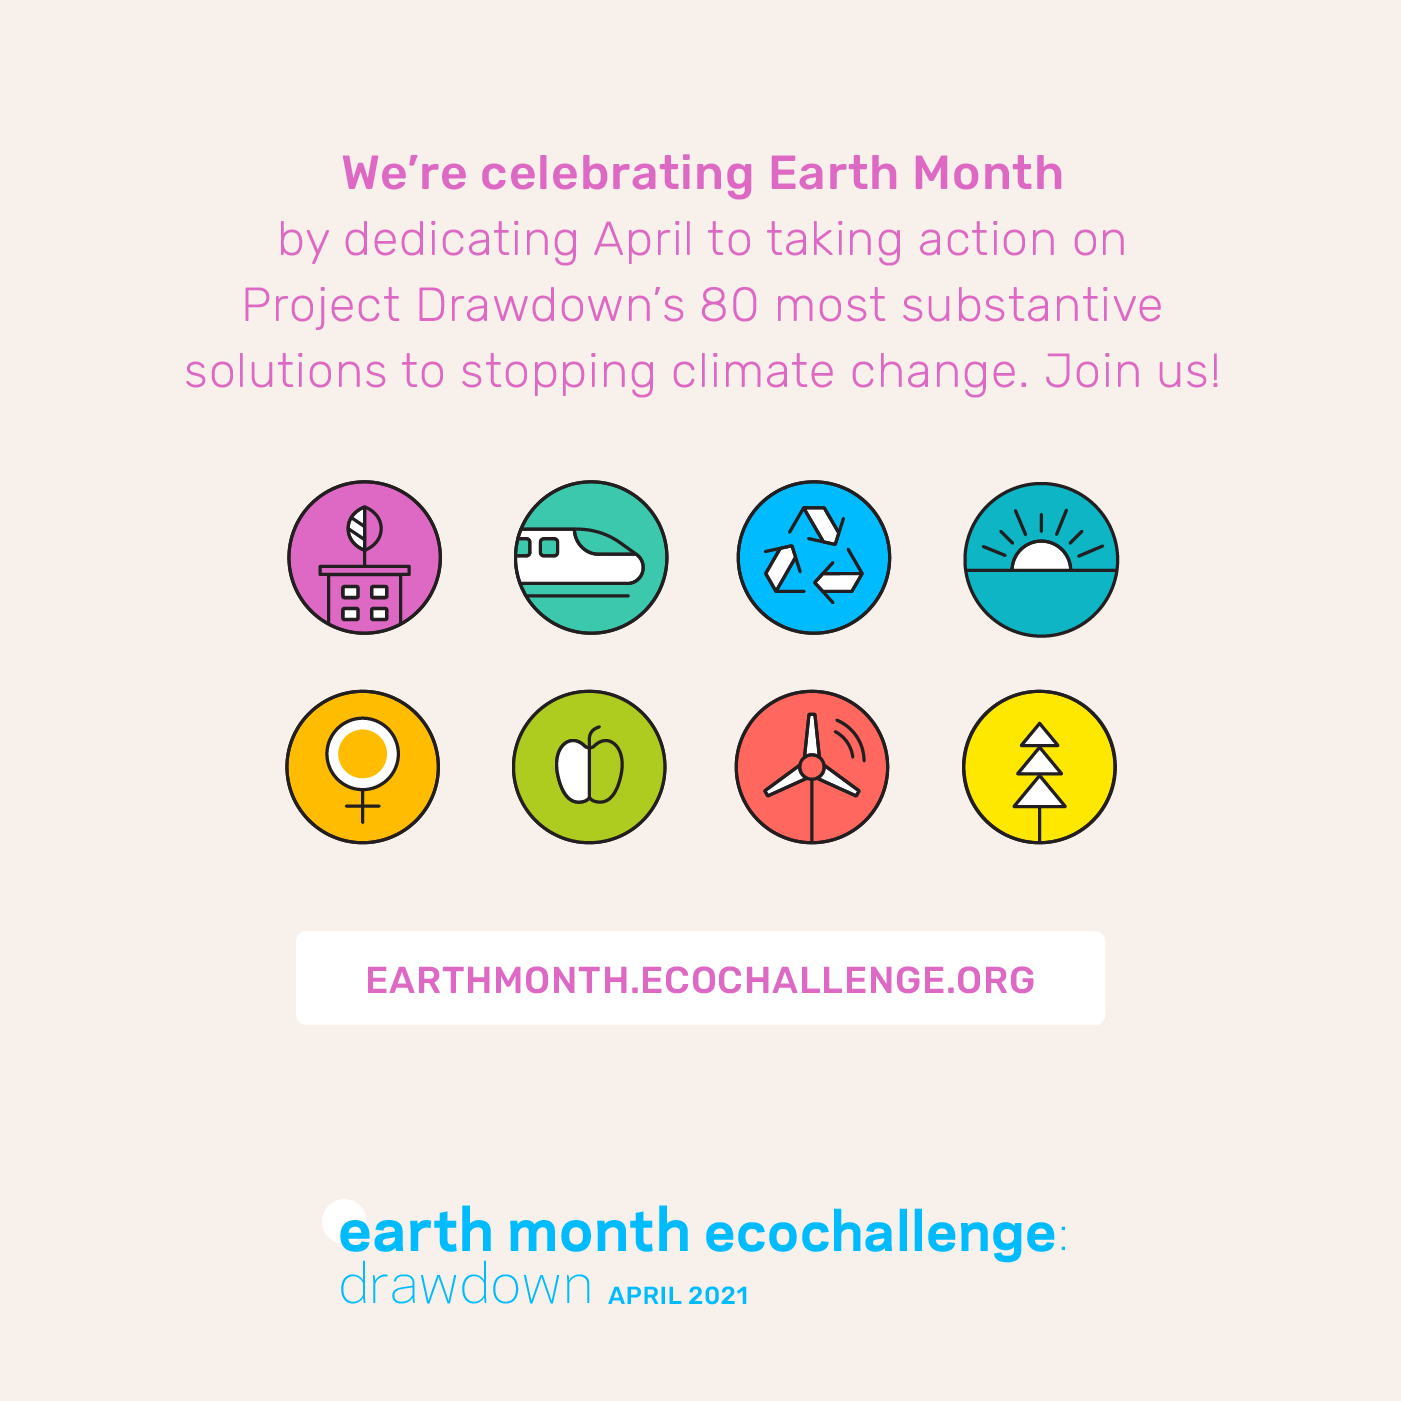 Text reads: We're celebrating Earth Month by dedicating April to tacking action on Project Drawdown's 80 most substantive solutions to stopping climate change. Join us!